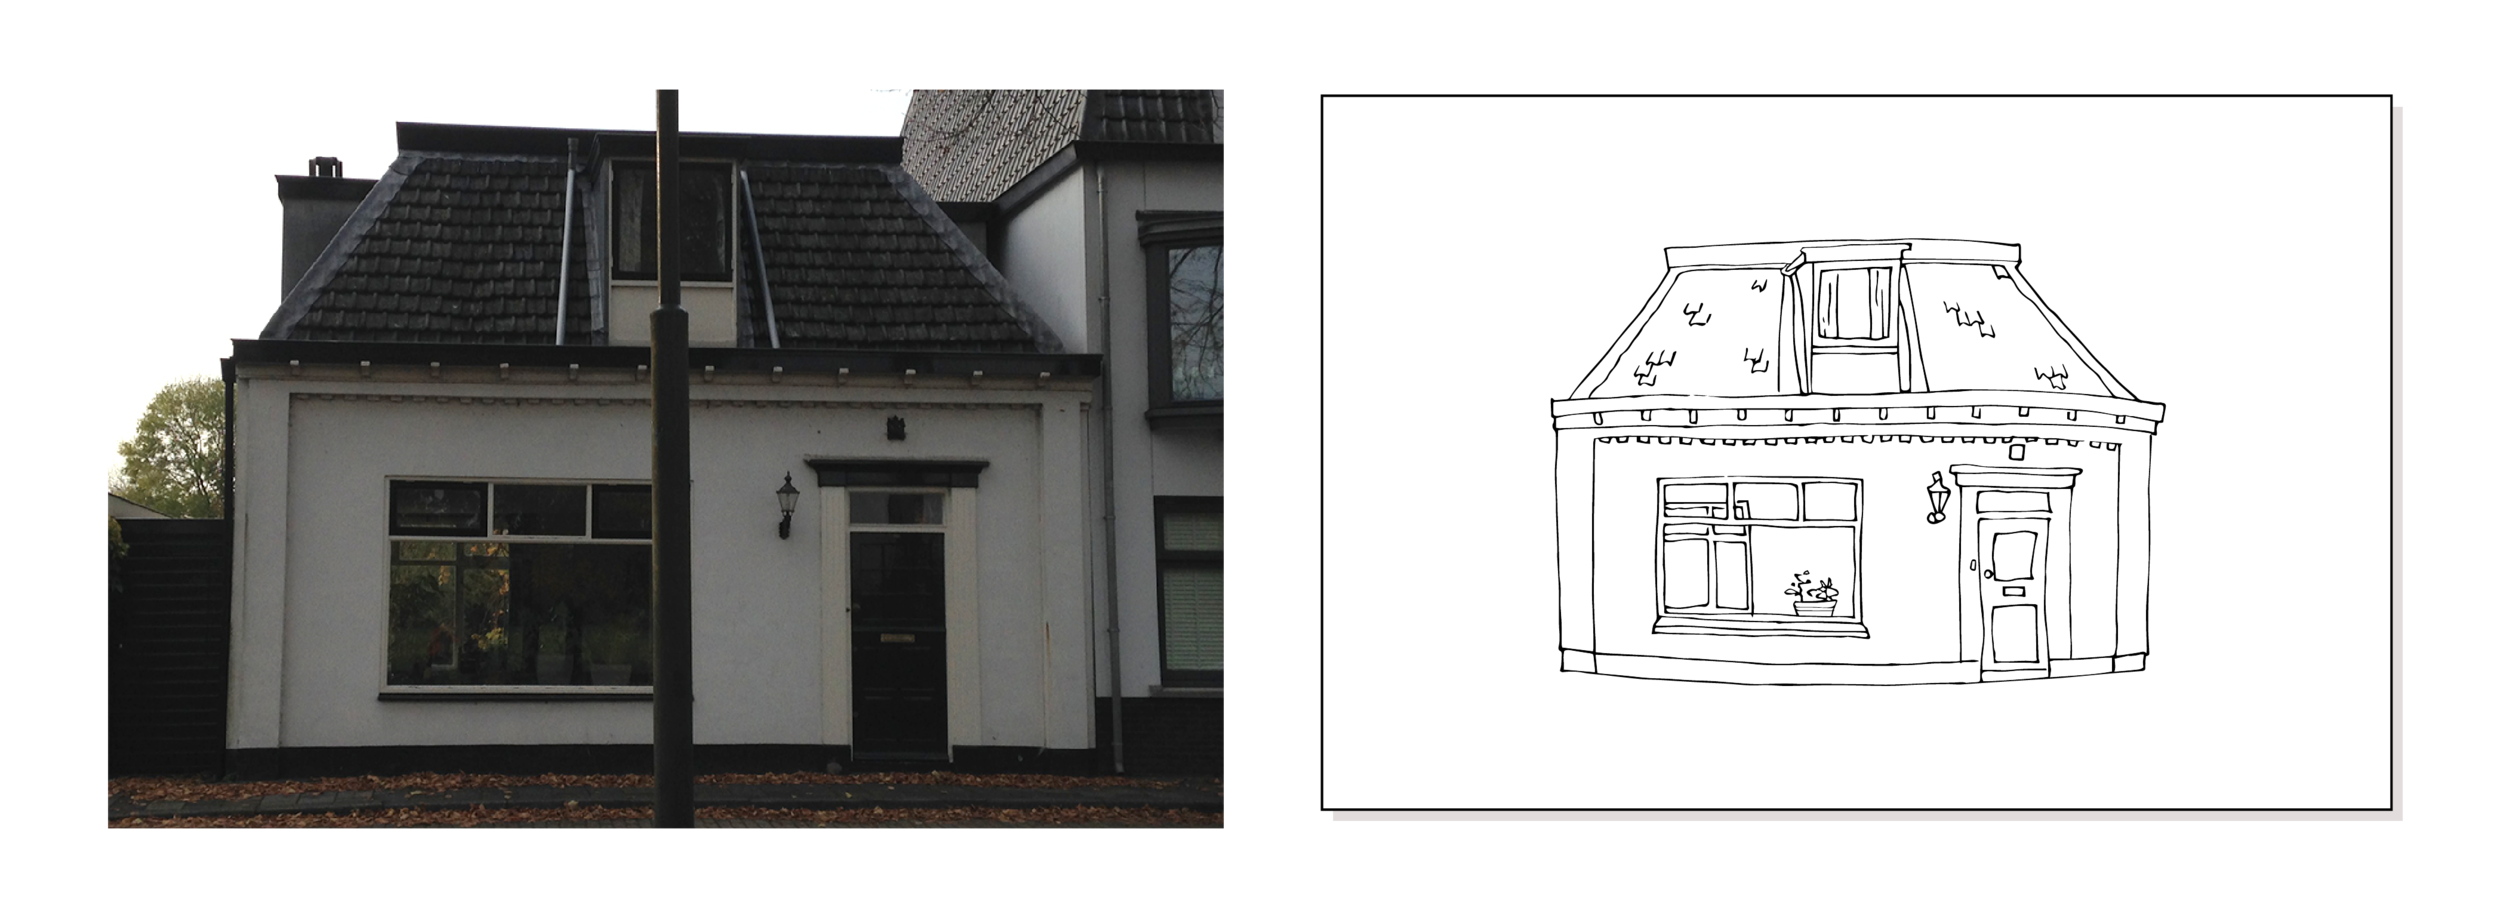 Here is an example of how to take the photo of your house for the drawing.